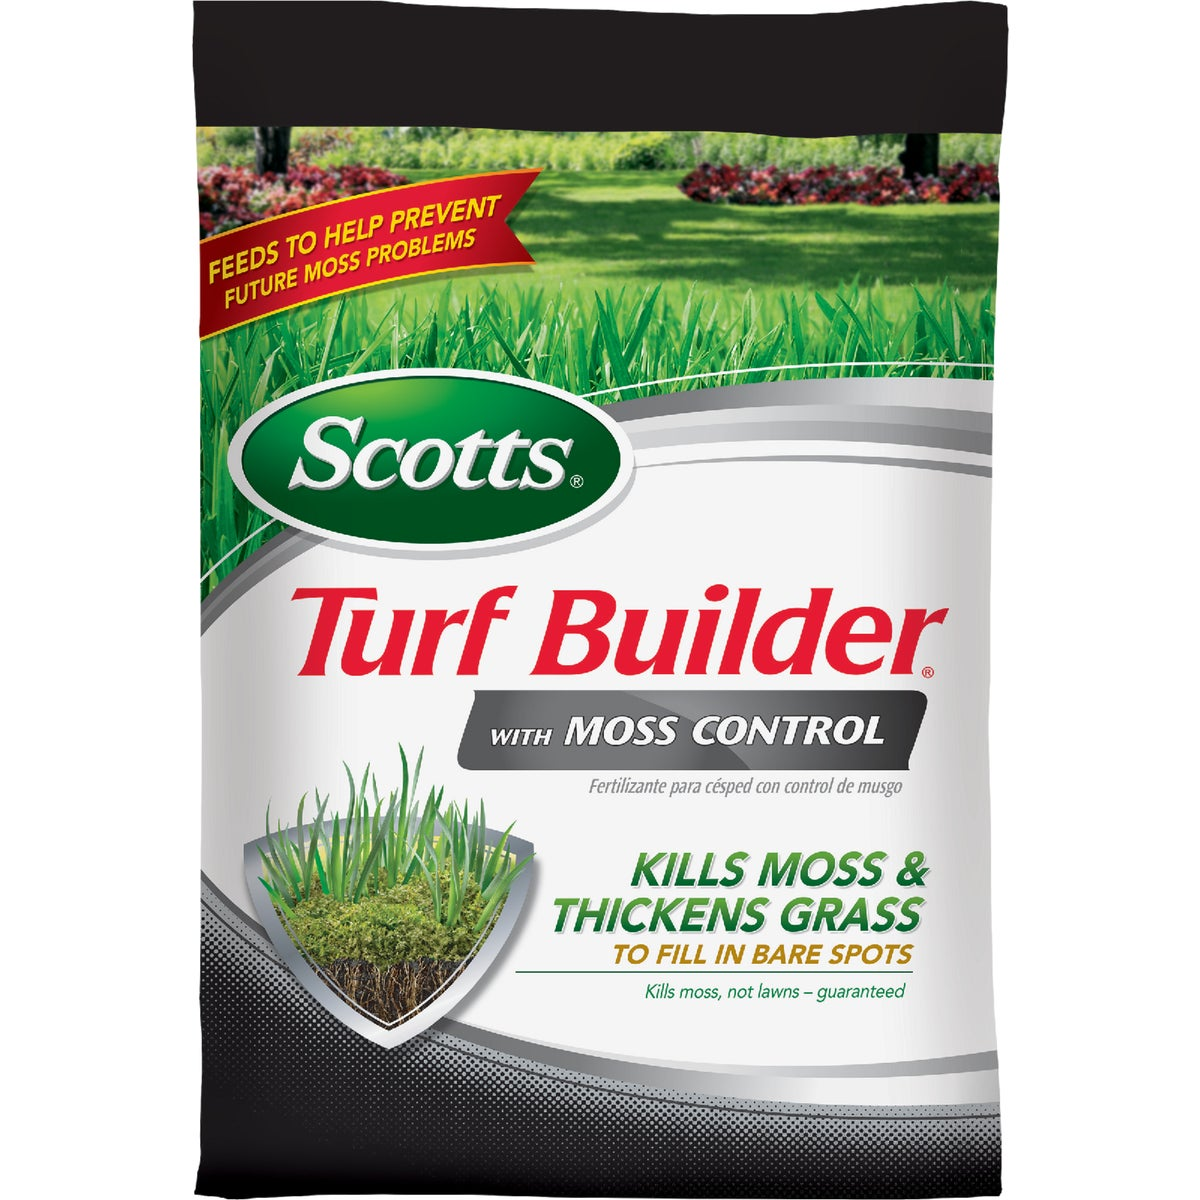 5M TURF BLDR MOSS CTRL - 38505 by Scotts Company